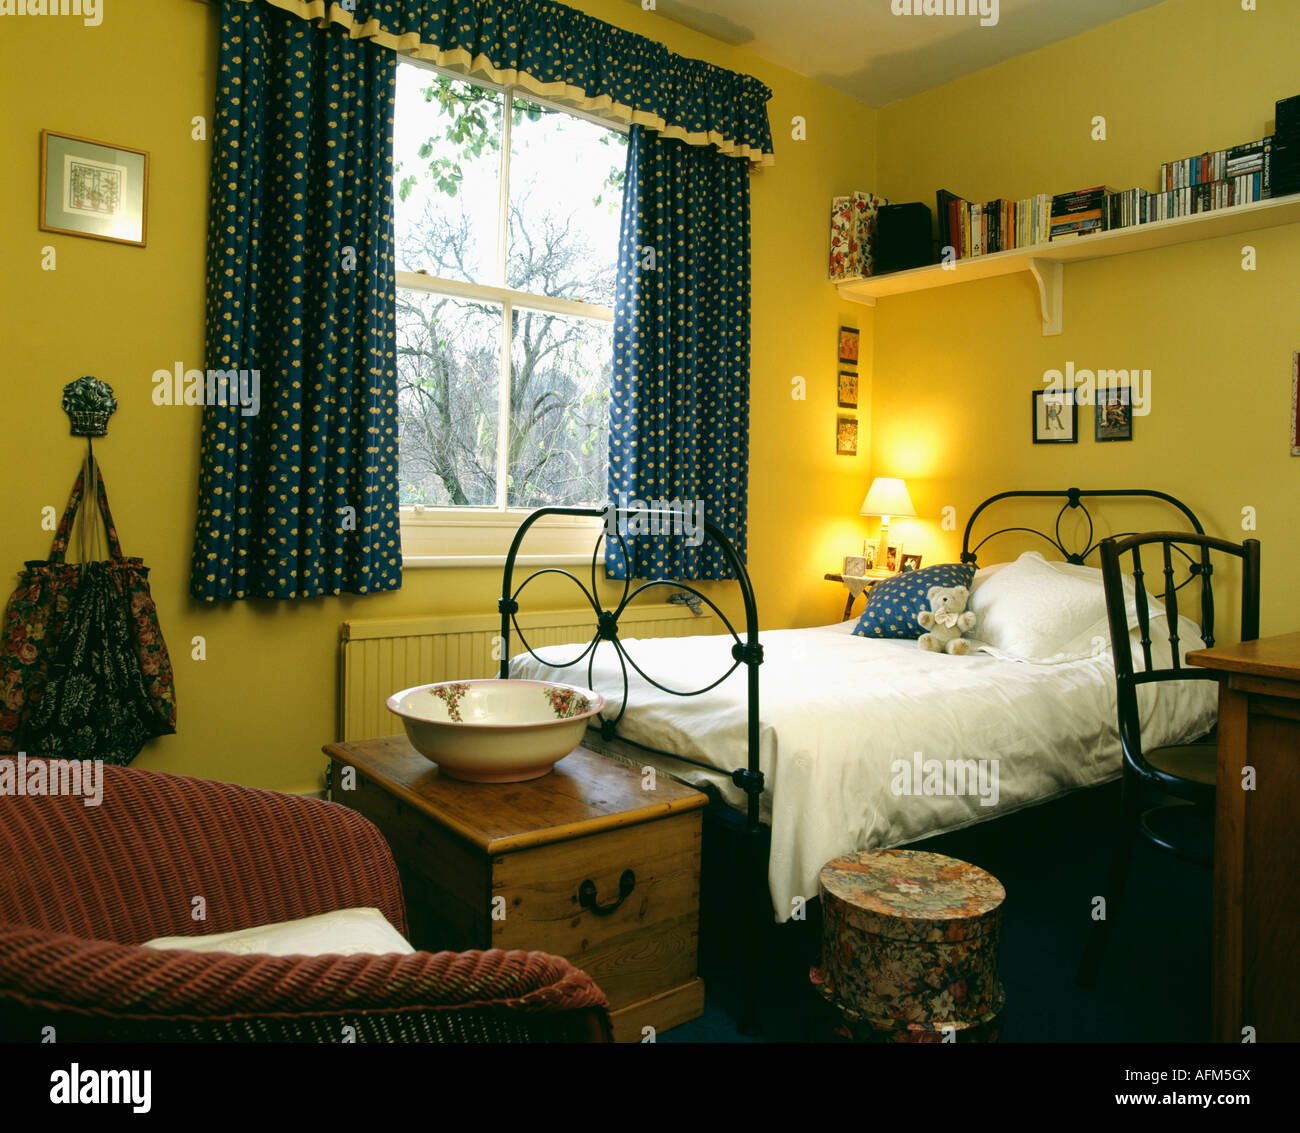 Shelf Above Single Wrought Iron Bed In Yellow Bedroom With Spotted Stock Photo Alamy